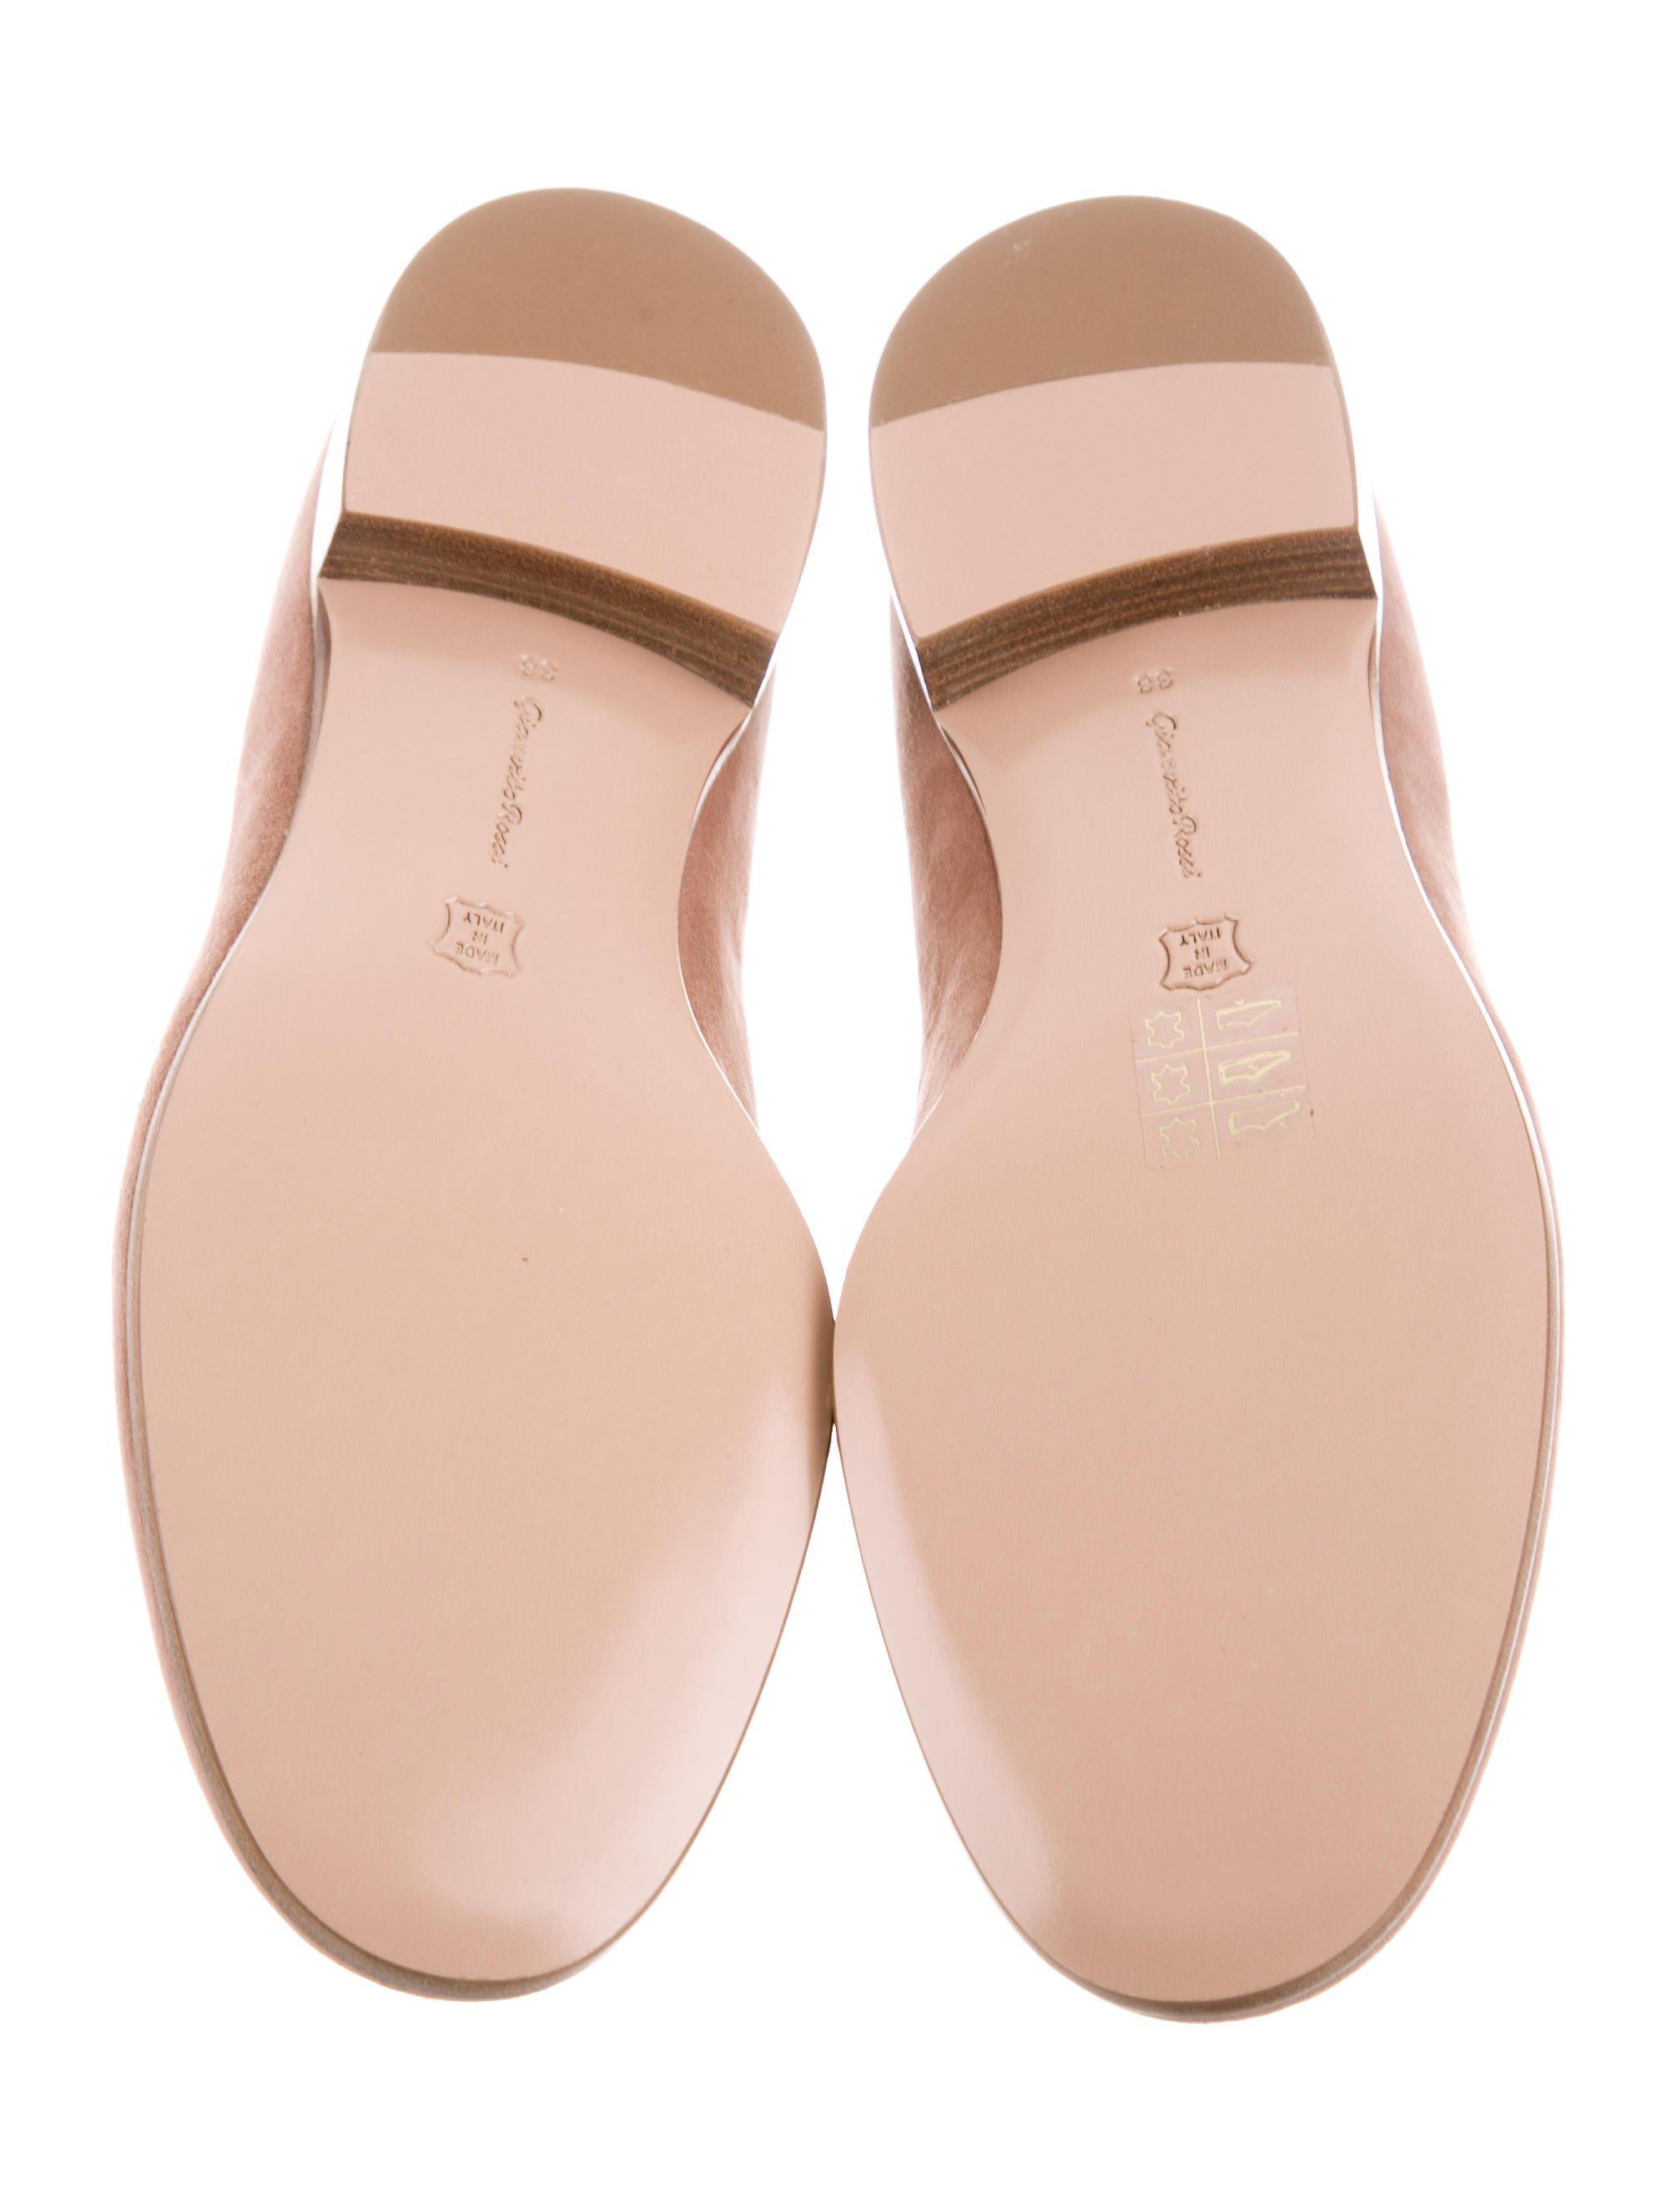 Gianvito Rossi 2017 Marcel Round-Toe Loafers w/ Tags view cheap price clearance prices collections shop for cheap low shipping fee WZe5t